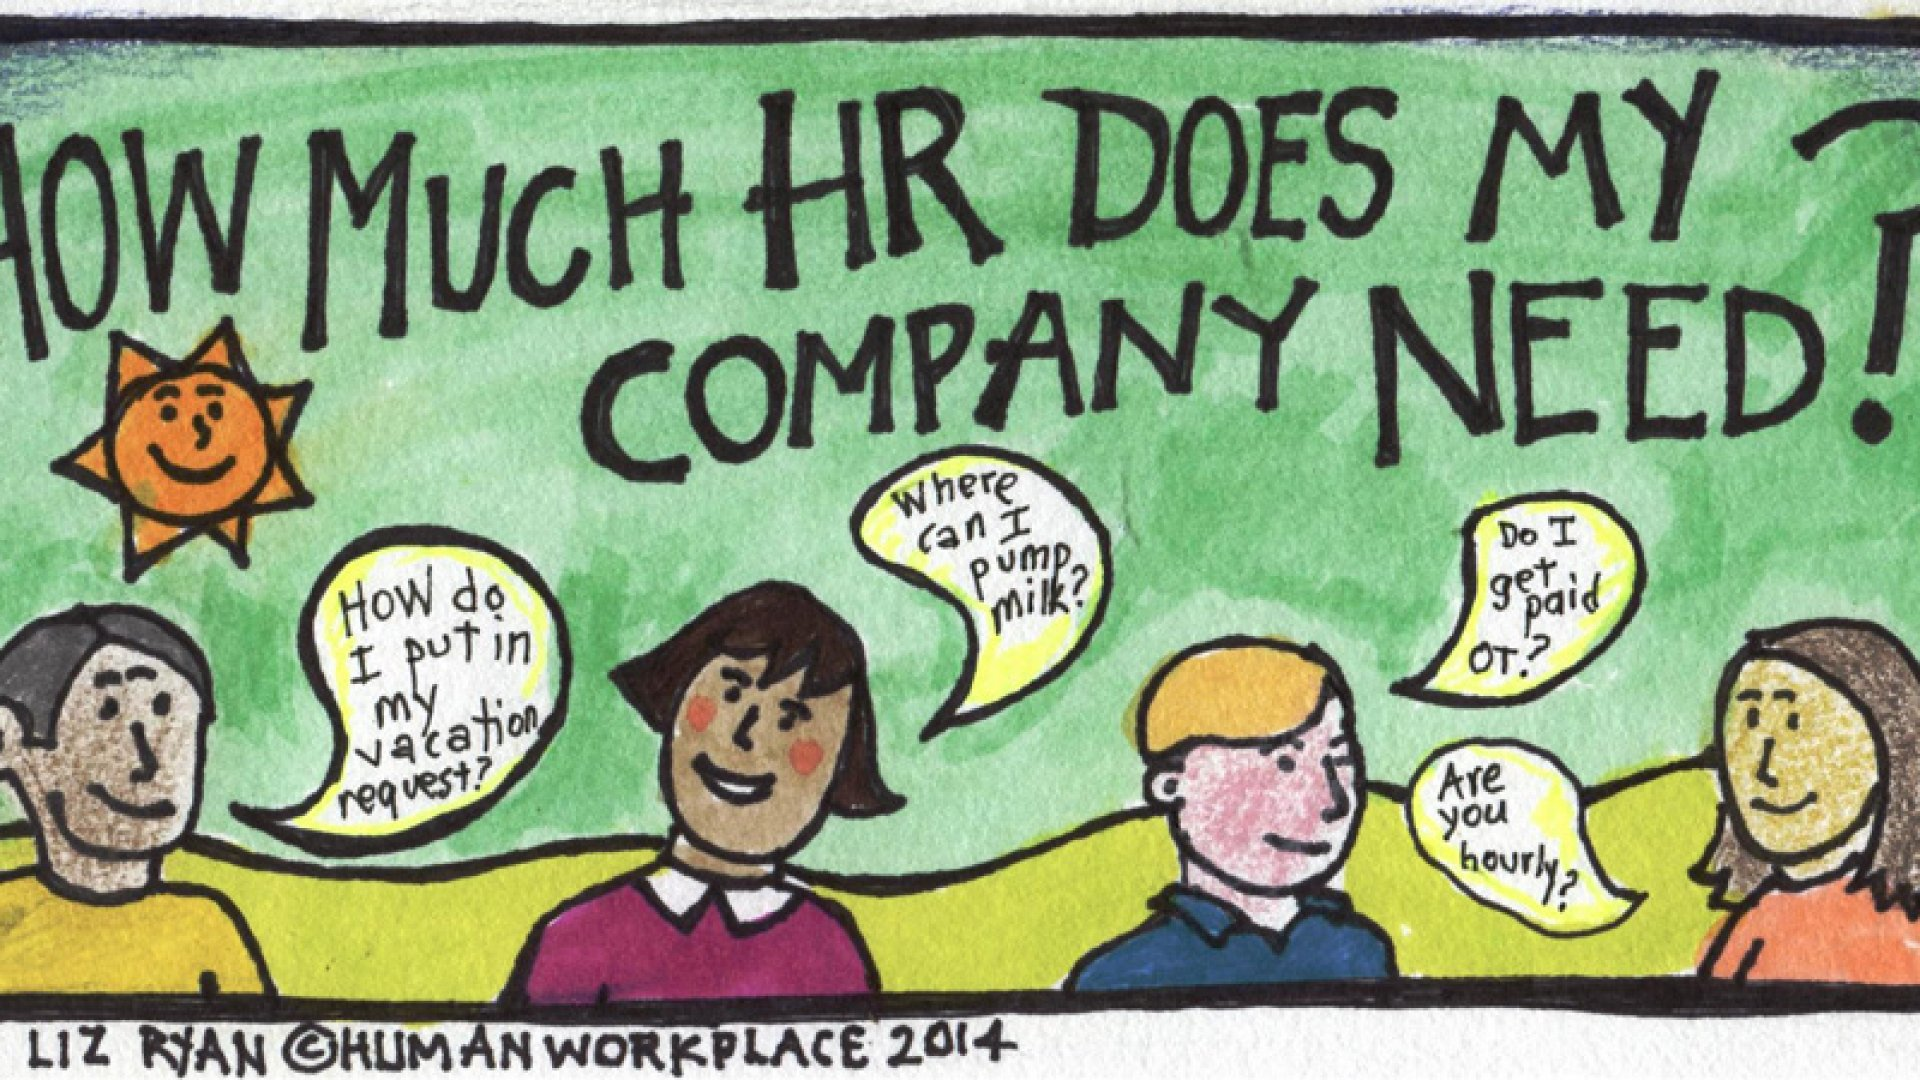 How Much HR Does My Company Need?